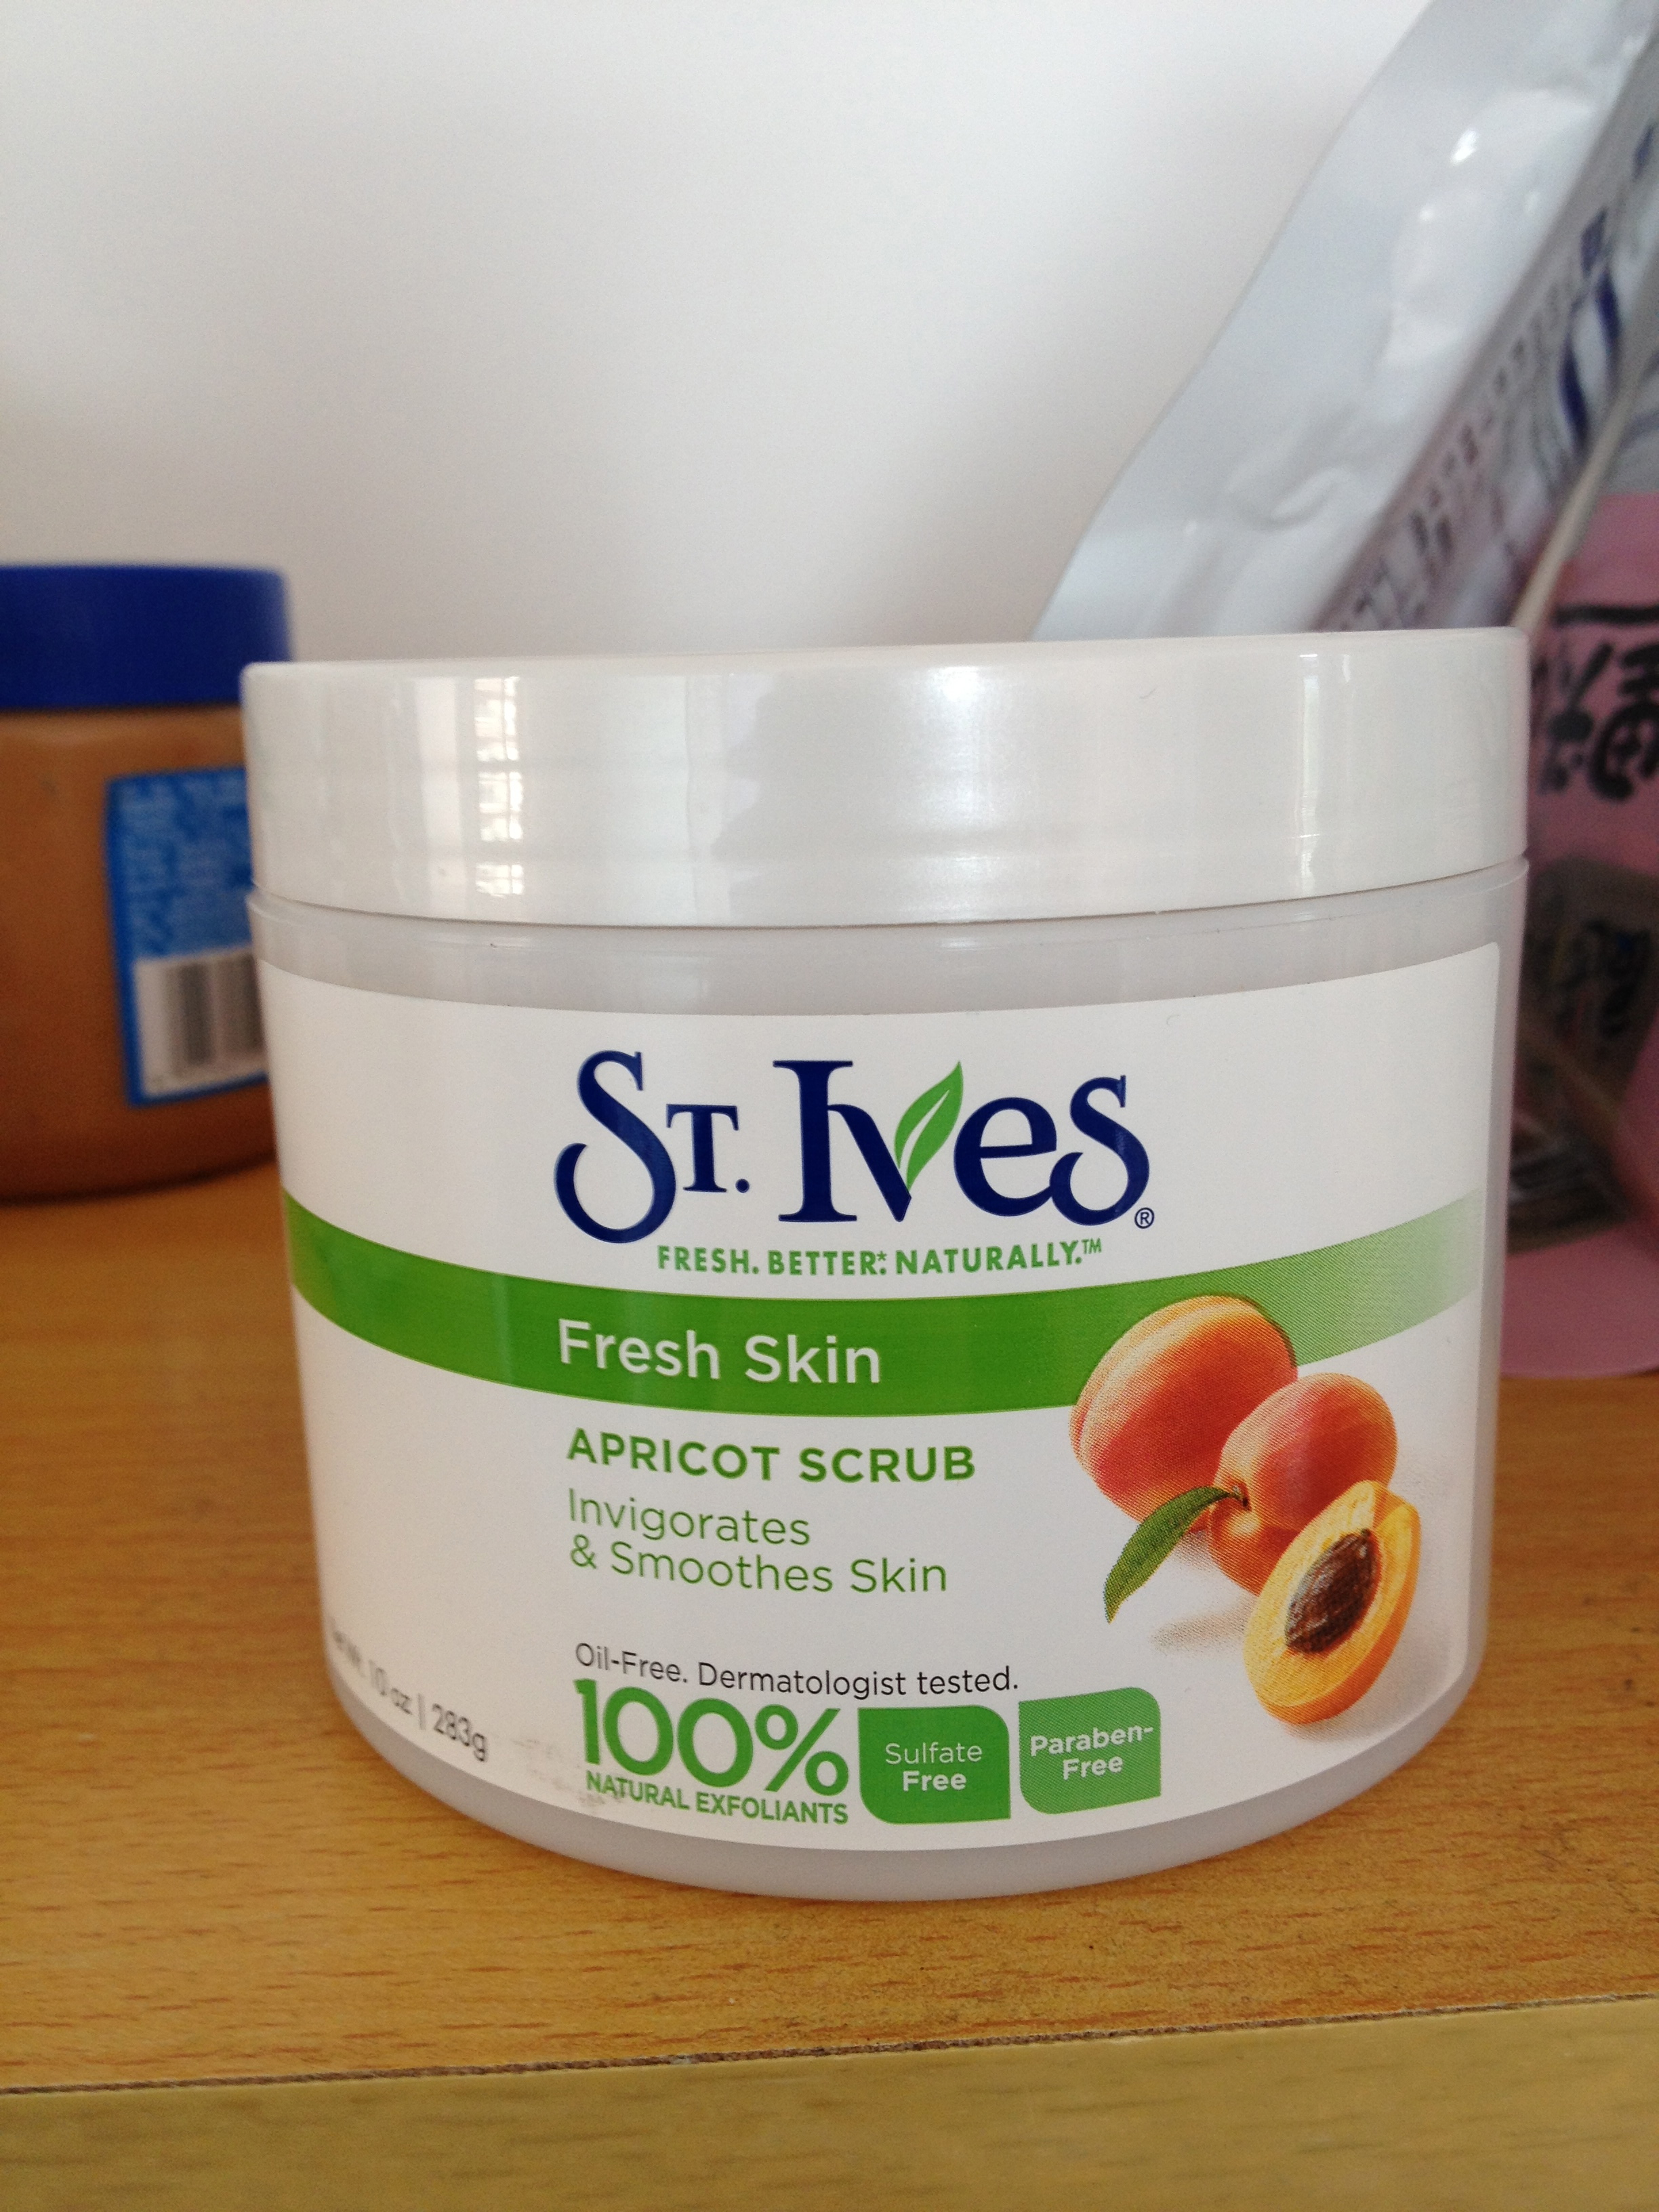 The most epic container of St. Ives Scrub that took me weeks to order.